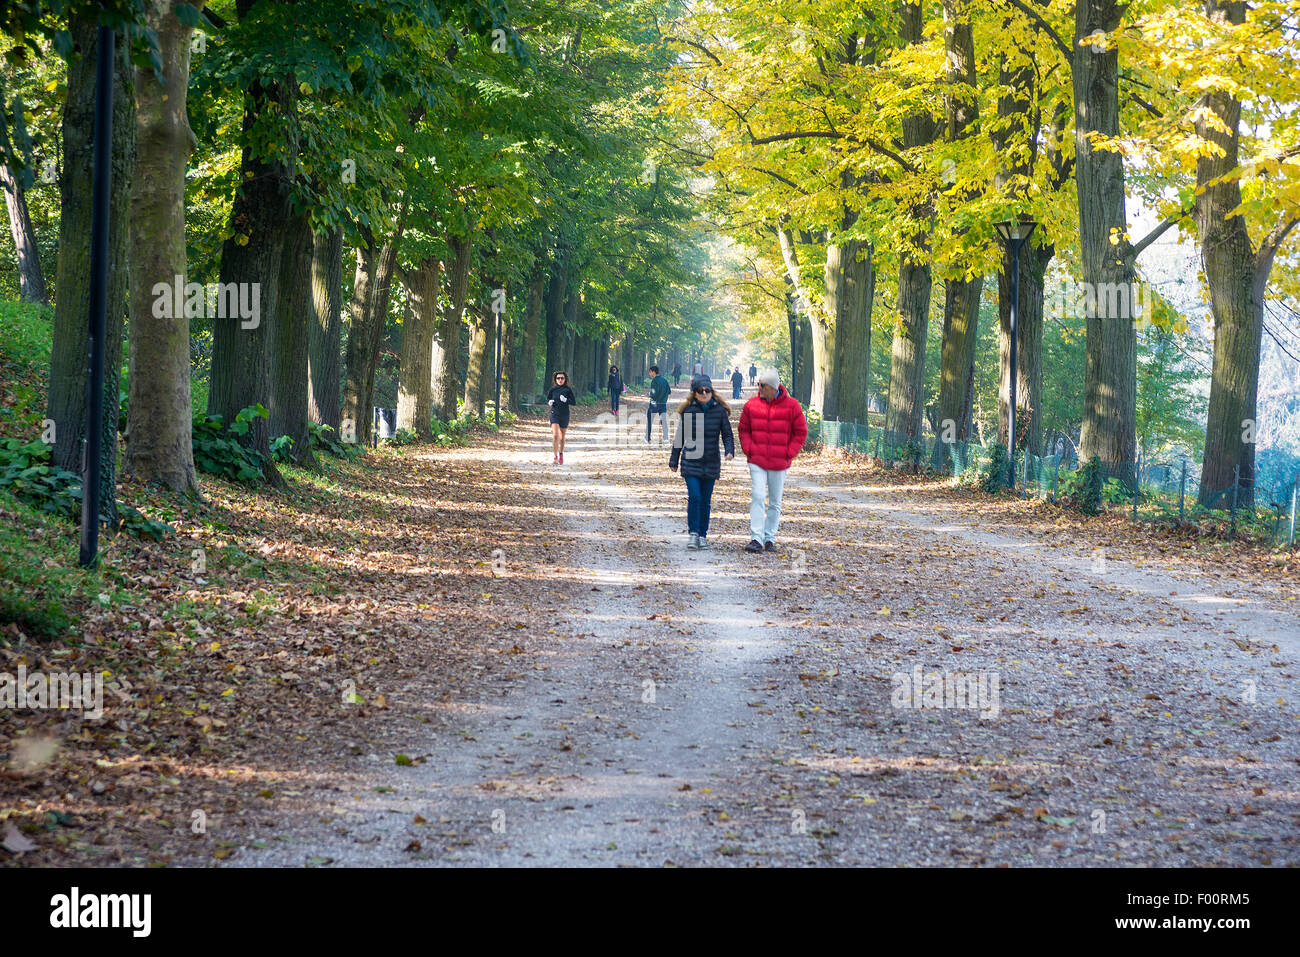 Walkers and runners on the old city walls. Ferrara, Italy - Stock Image